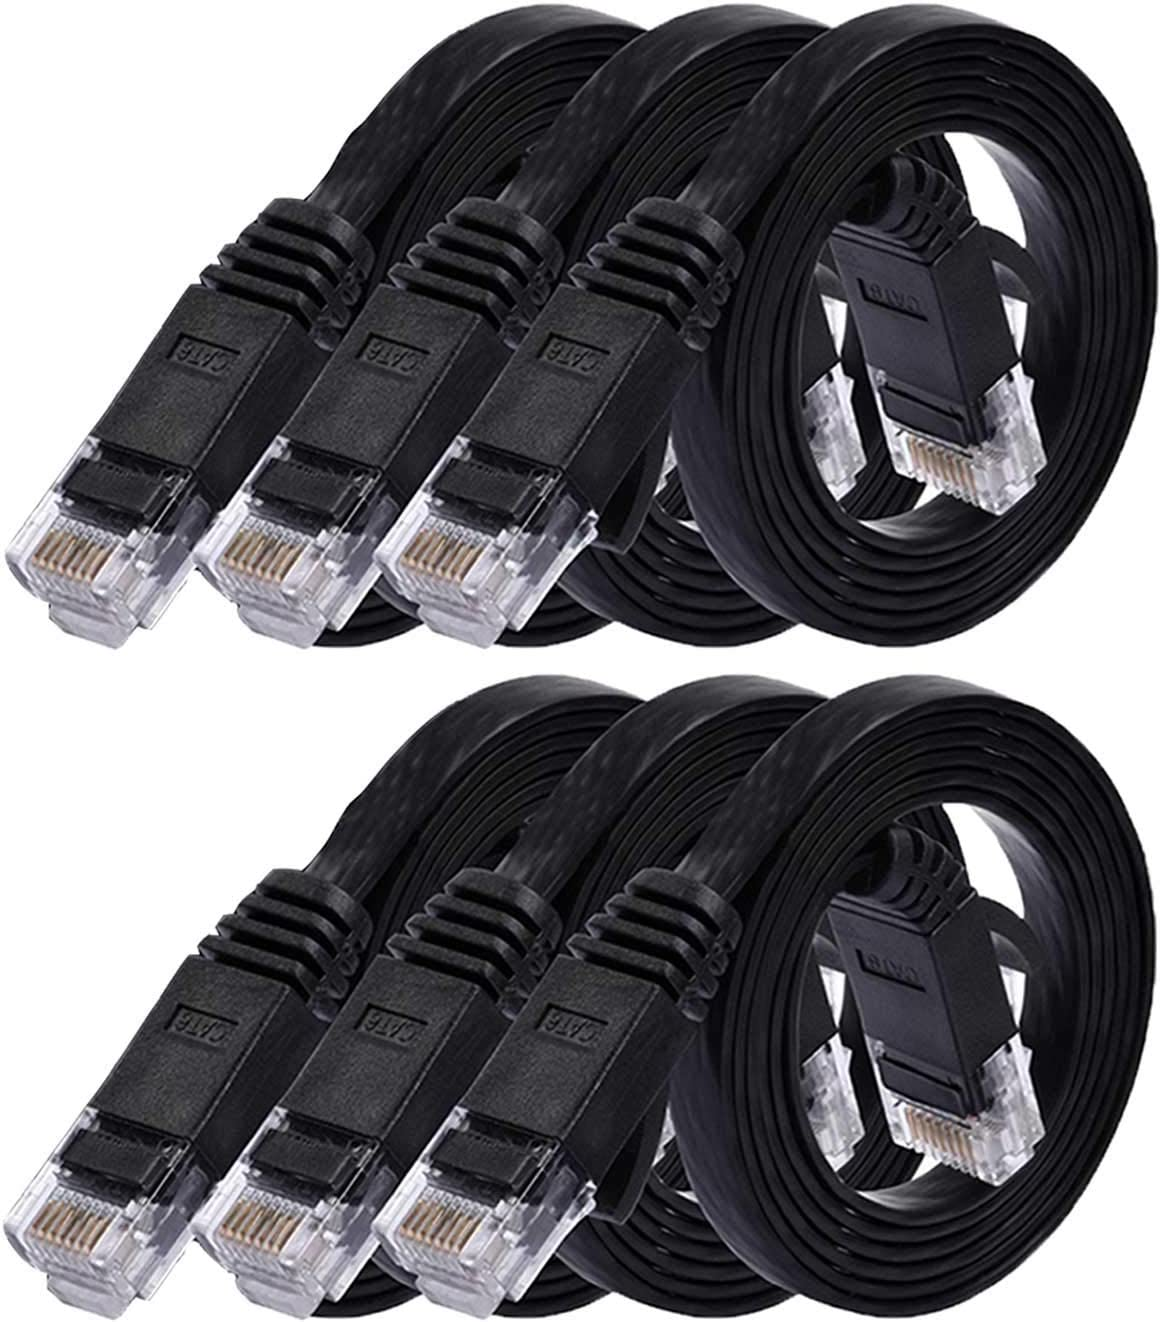 Cat 6 Ethernet Cable 3ft (6 Pack) (at a Cat5e Price but Higher Bandwidth) Flat Internet Network Cable - Cat6 Ethernet Patch Cable Short - Black Computer Cable with Snagless RJ45 Connectors